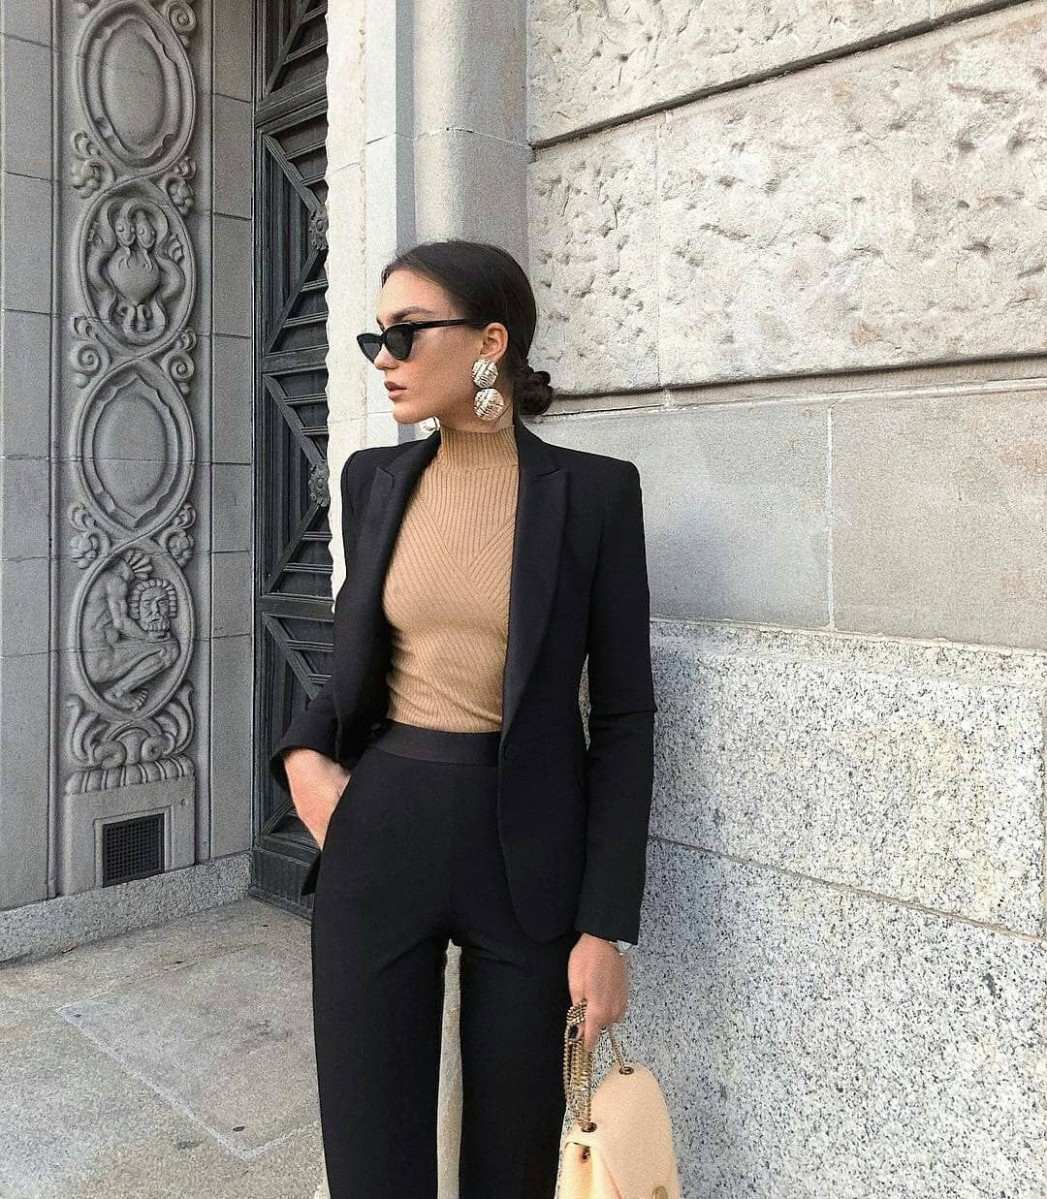 Pin By Shot By Nae On Work Professional Outfits, Work Outfits Business Outfit Frau